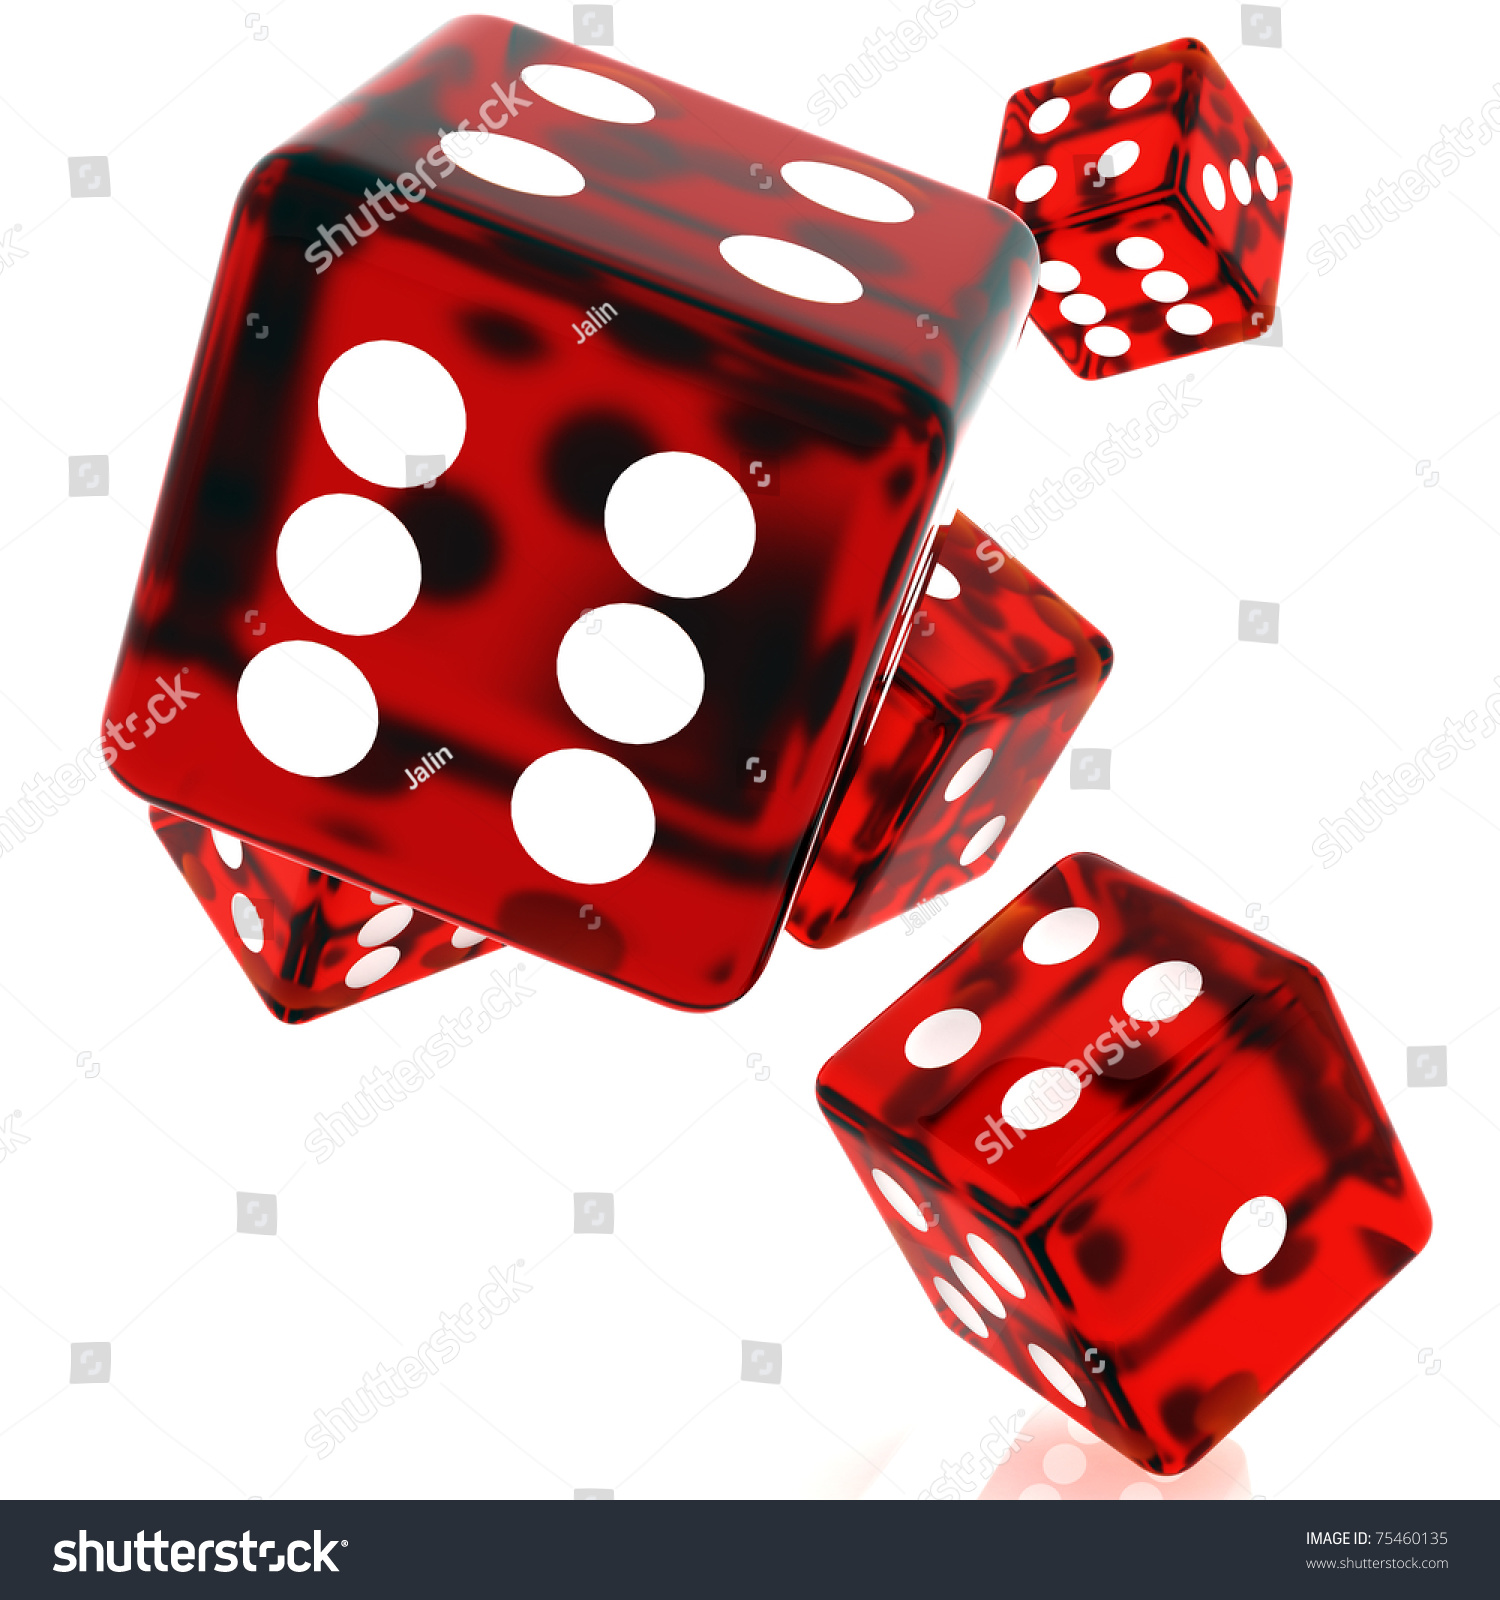 online casino affiliate dice roll online